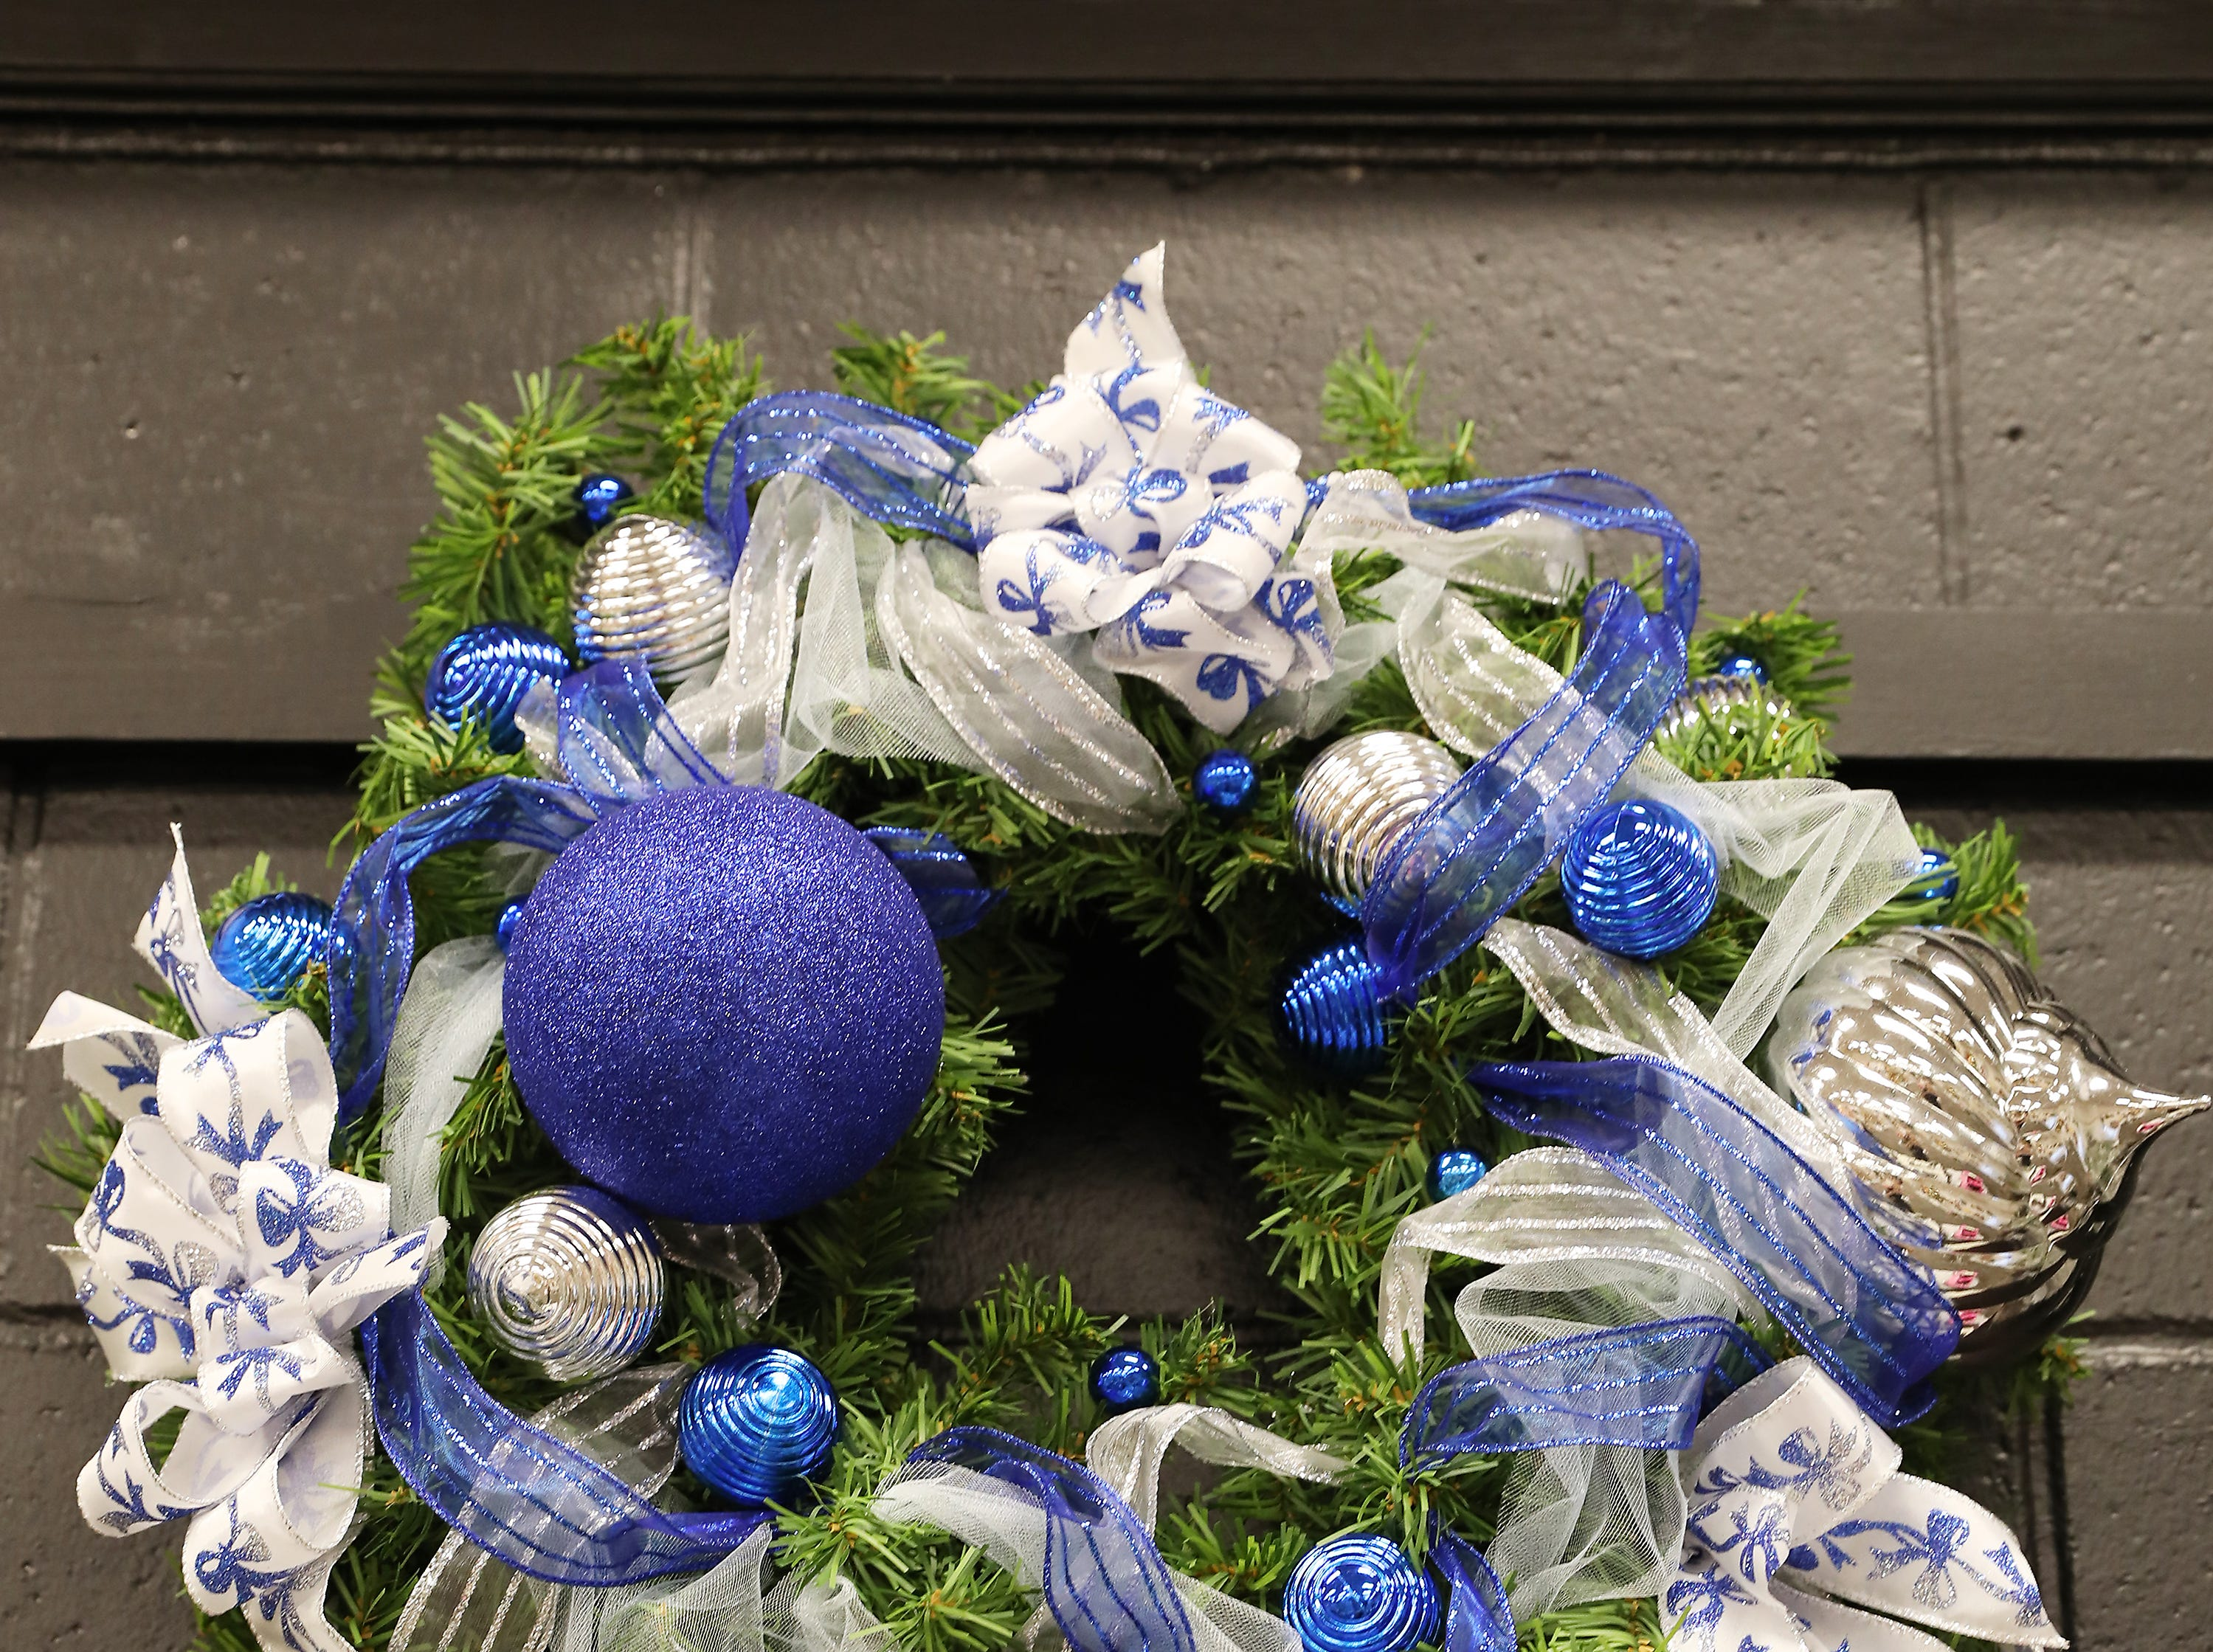 "17	9:30 AM	Dine Local	Wreath	Blue Christmas	24"" green pine wreath wrapped in blue, silver and white trim.		2 - $5 gift certificates to Whit's, 14 - $5 off your next meal at Olive Garden"